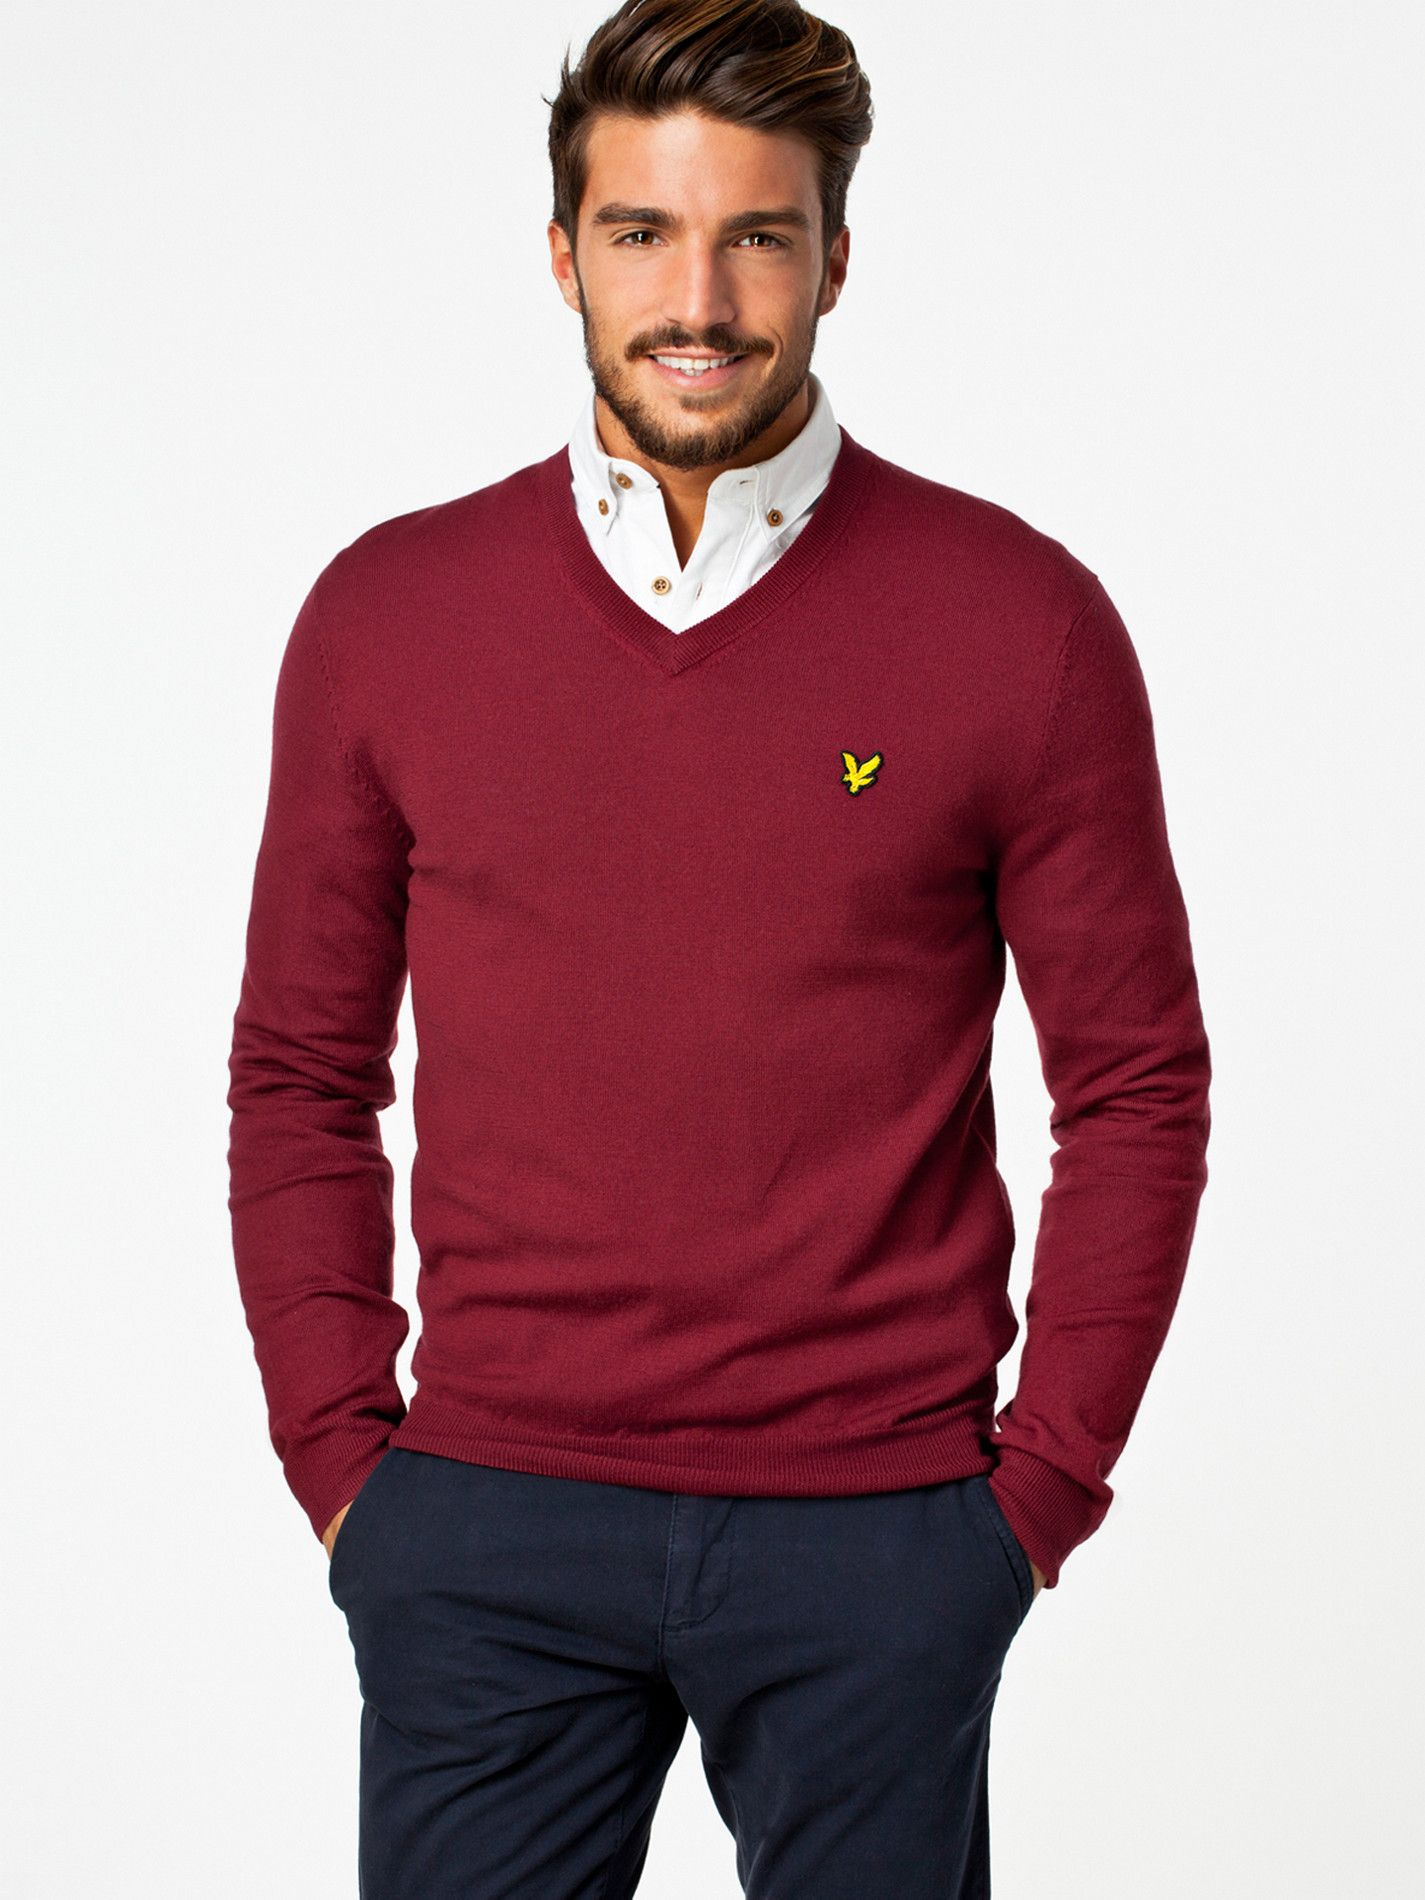 Classic British style, red Lyle and Scott jumper paired with a white shirt  and navy chinos